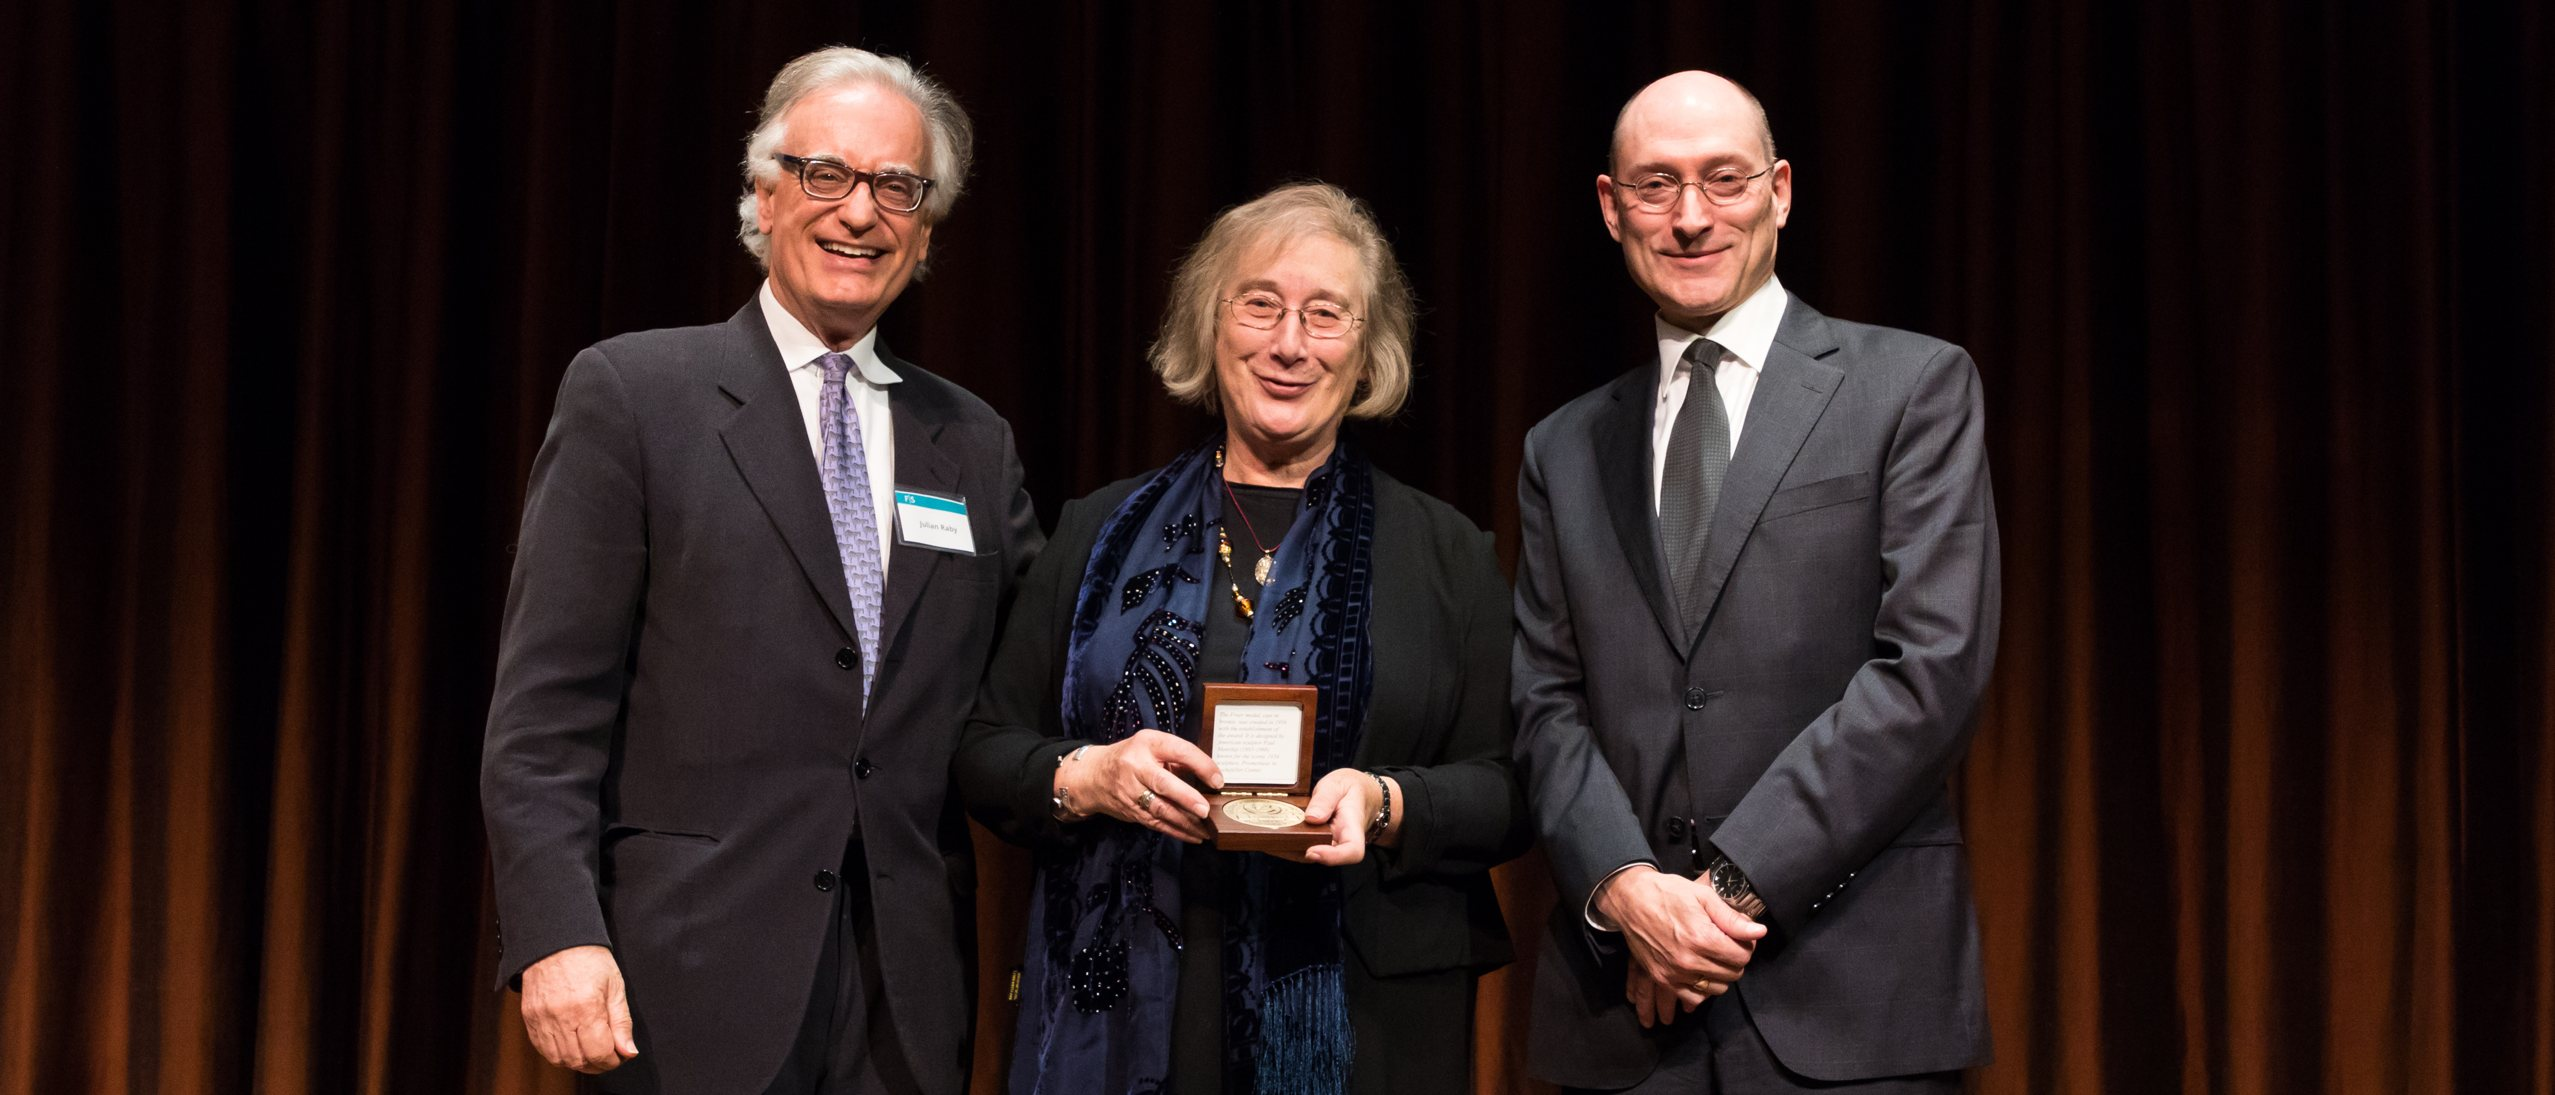 Director Julian Raby presenting the Freer Medal to Dame Professor Jessica Rawson